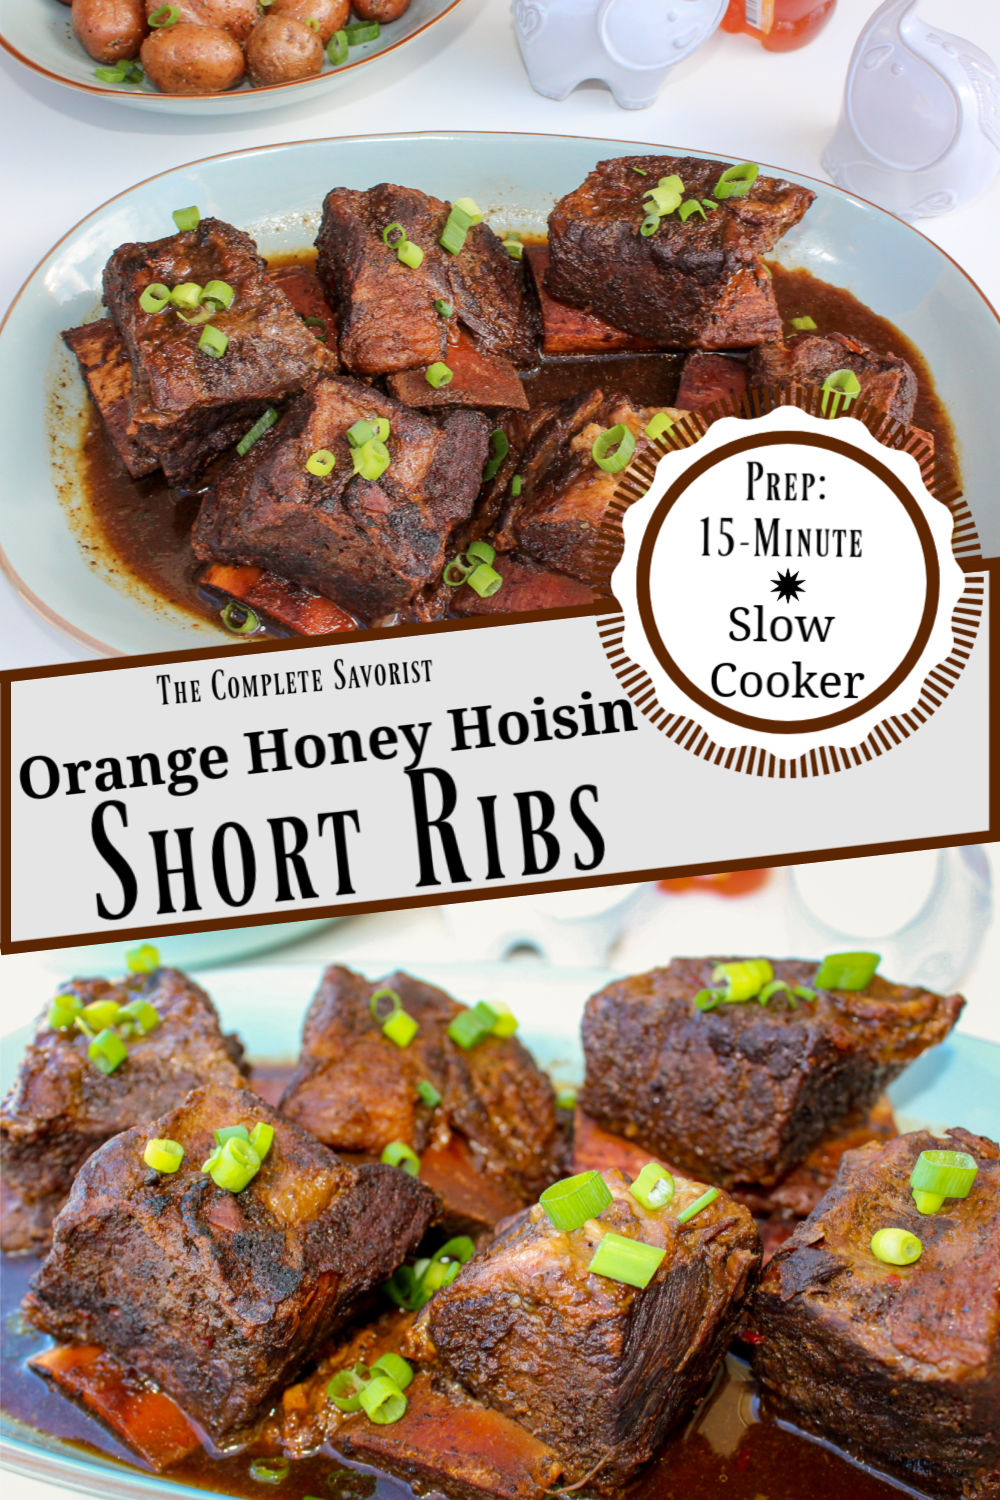 Recipe titled split image of beef short ribs in sauce on a blue plate garnished with green onions.